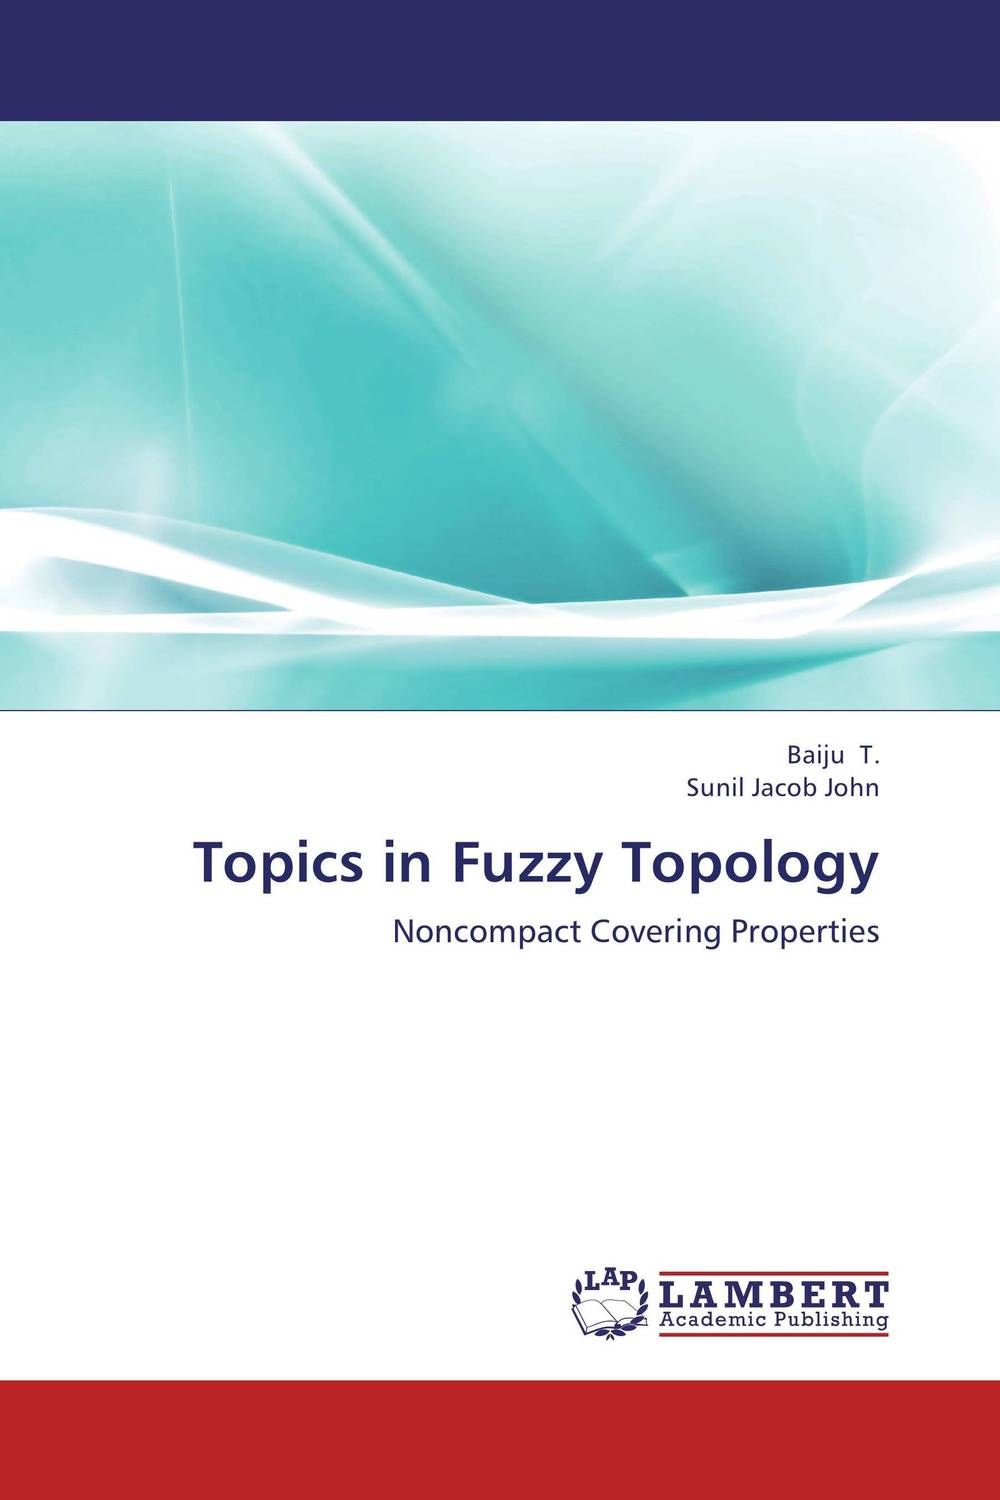 Topics in Fuzzy Topology n j patil r h chile and l m waghmare design of adaptive fuzzy controllers